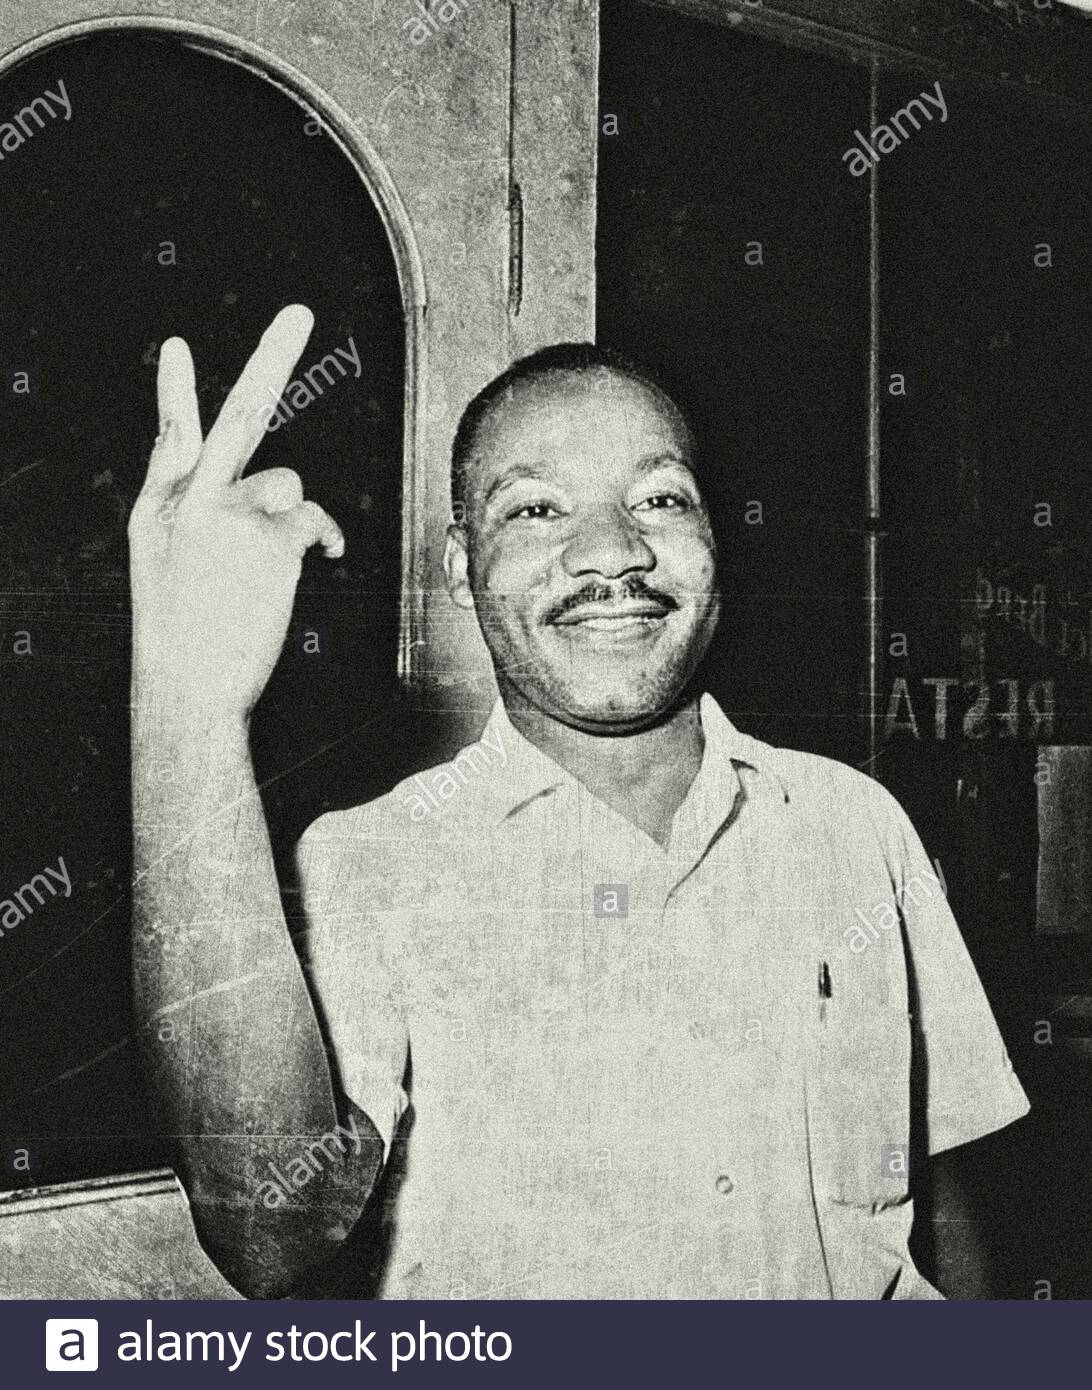 Dr. Martin Luther King, Jr., in St. Augustine, Florida, reacts after learning that the U.S. senate passed the civil rights bill on June 19, 1964. Stock Photo